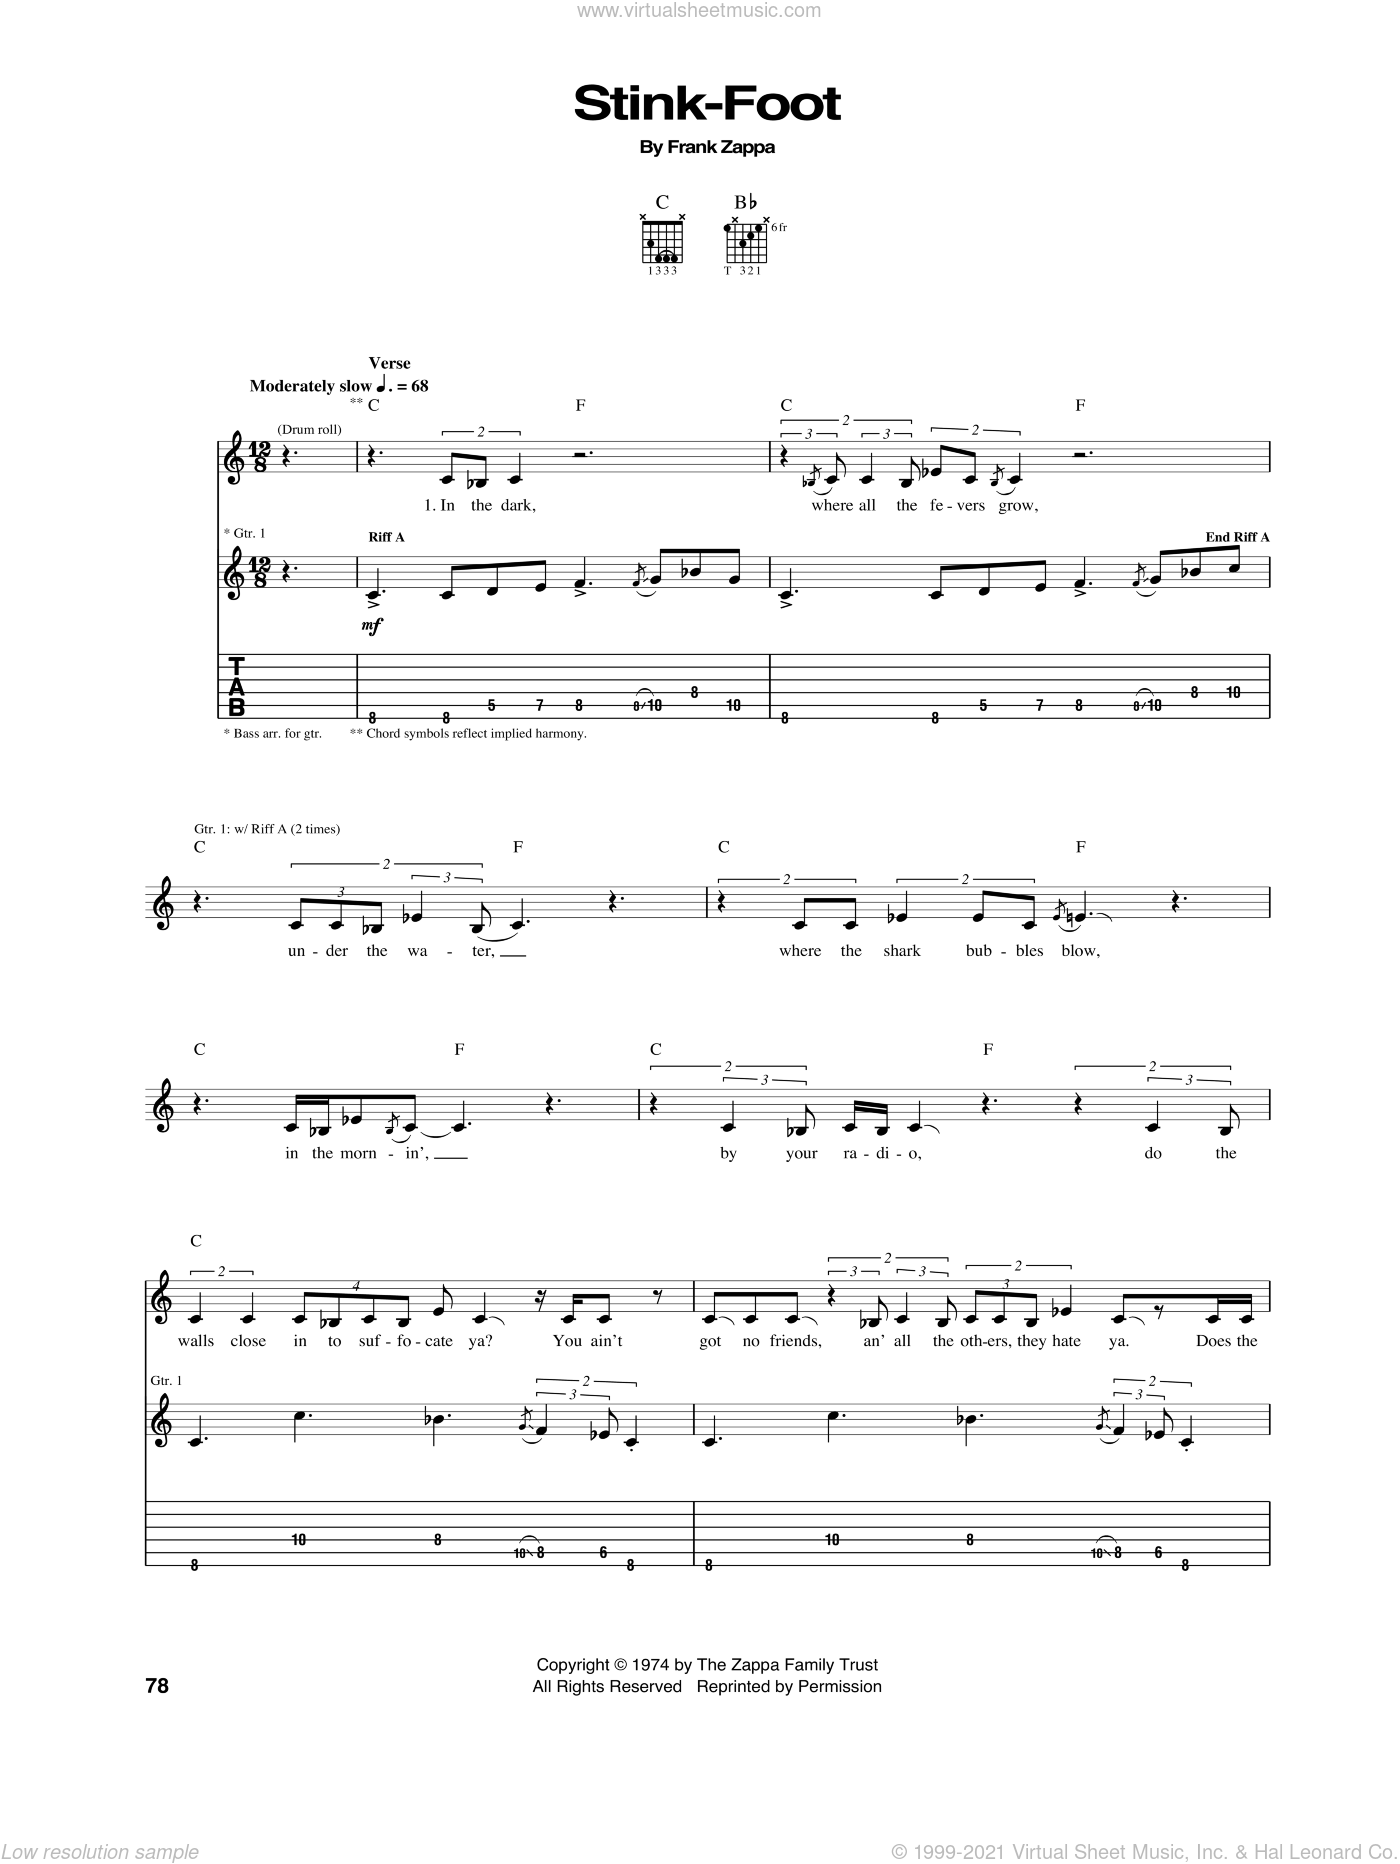 Stink-Foot sheet music for guitar (tablature) by Frank Zappa